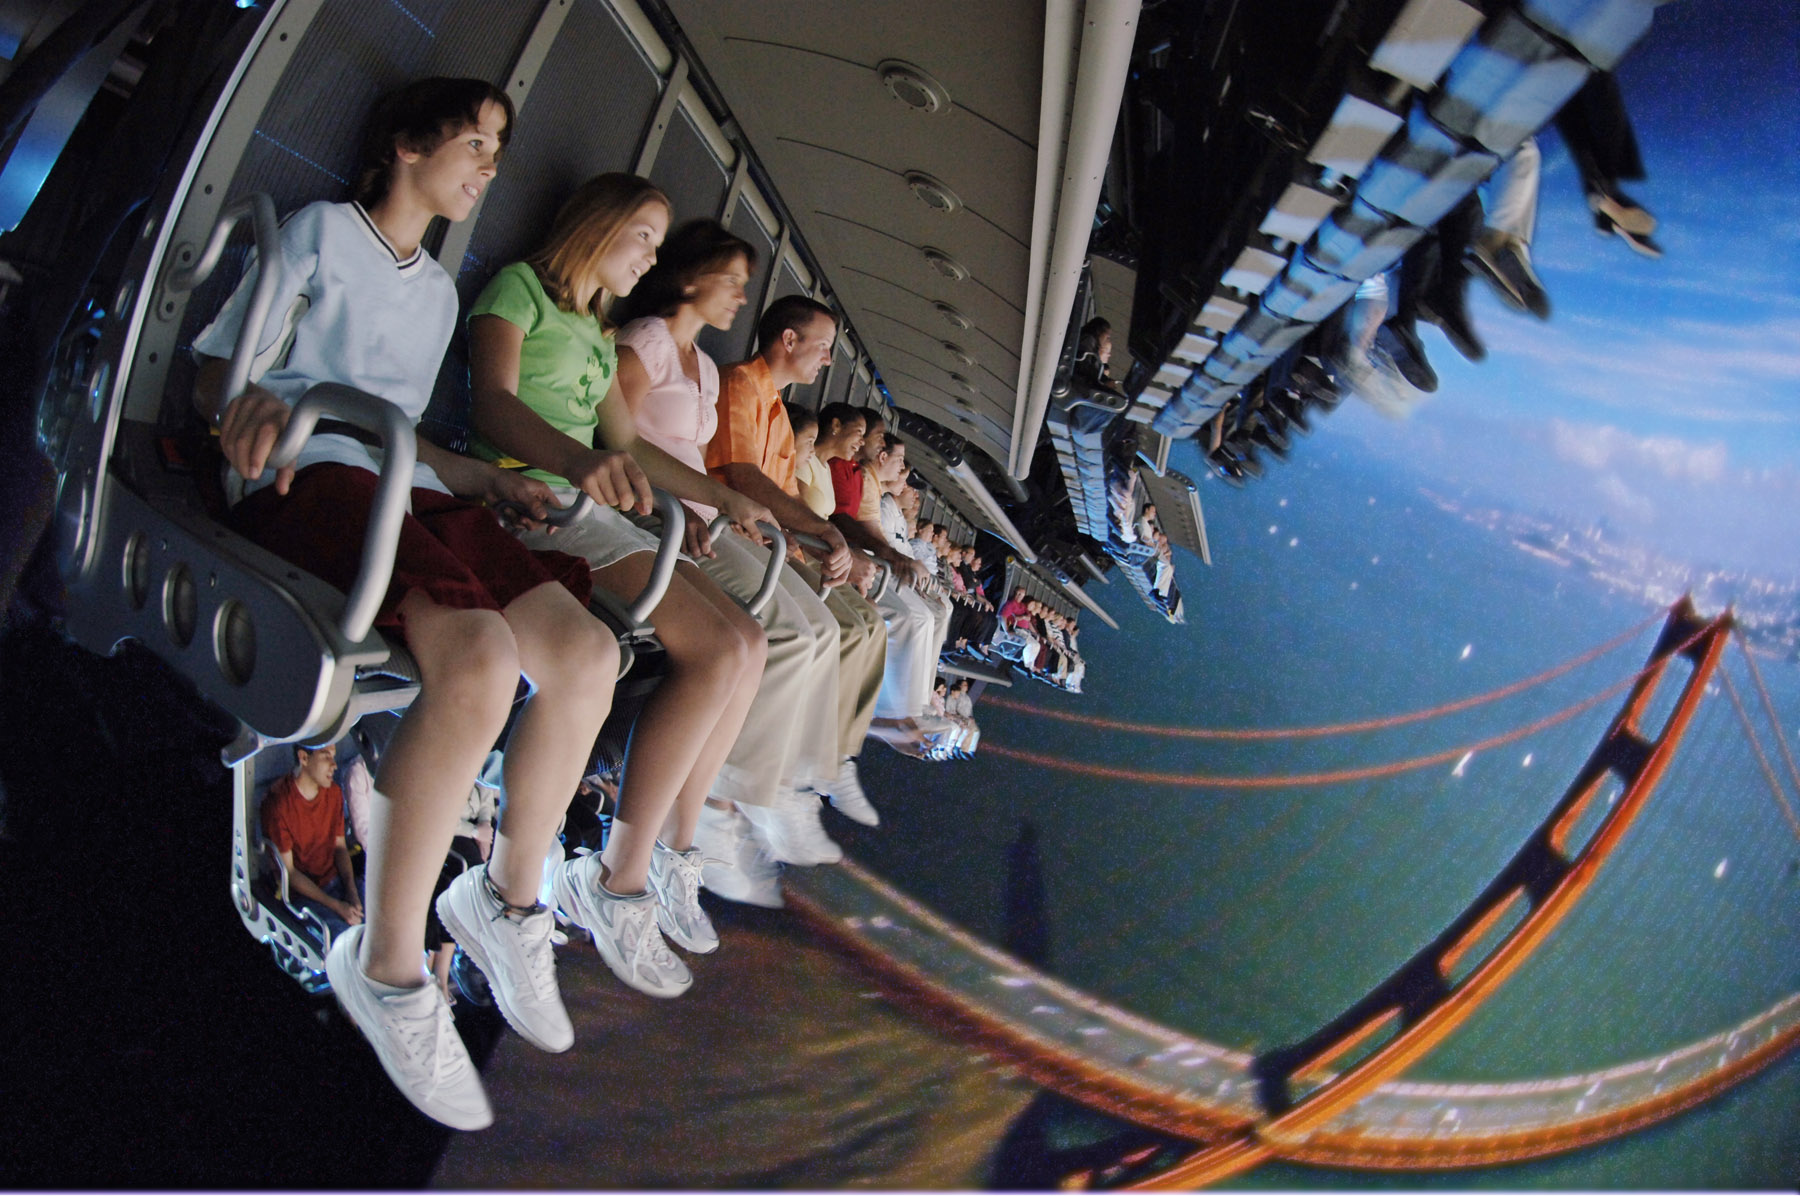 Will We Soon Be Soarin' Over The World?